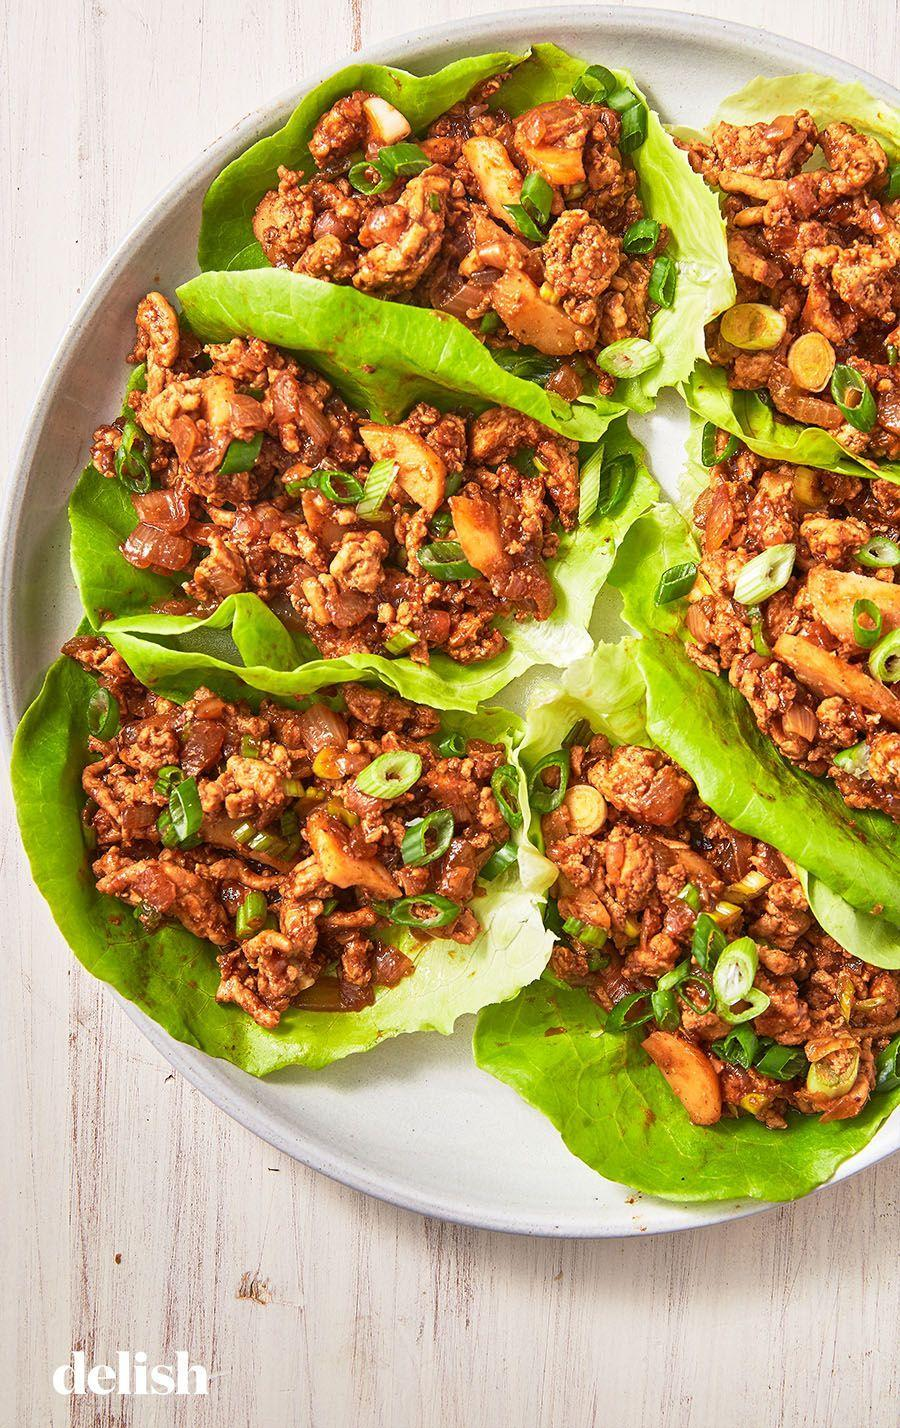 """<p>Inspired by the staple appetizer at P.F. Chang's restaurant.</p><p>Get the recipe from <a href=""""https://www.delish.com/cooking/recipe-ideas/recipes/a49533/asian-lettuce-wraps-recipe/"""" rel=""""nofollow noopener"""" target=""""_blank"""" data-ylk=""""slk:Delish"""" class=""""link rapid-noclick-resp"""">Delish</a>.</p>"""